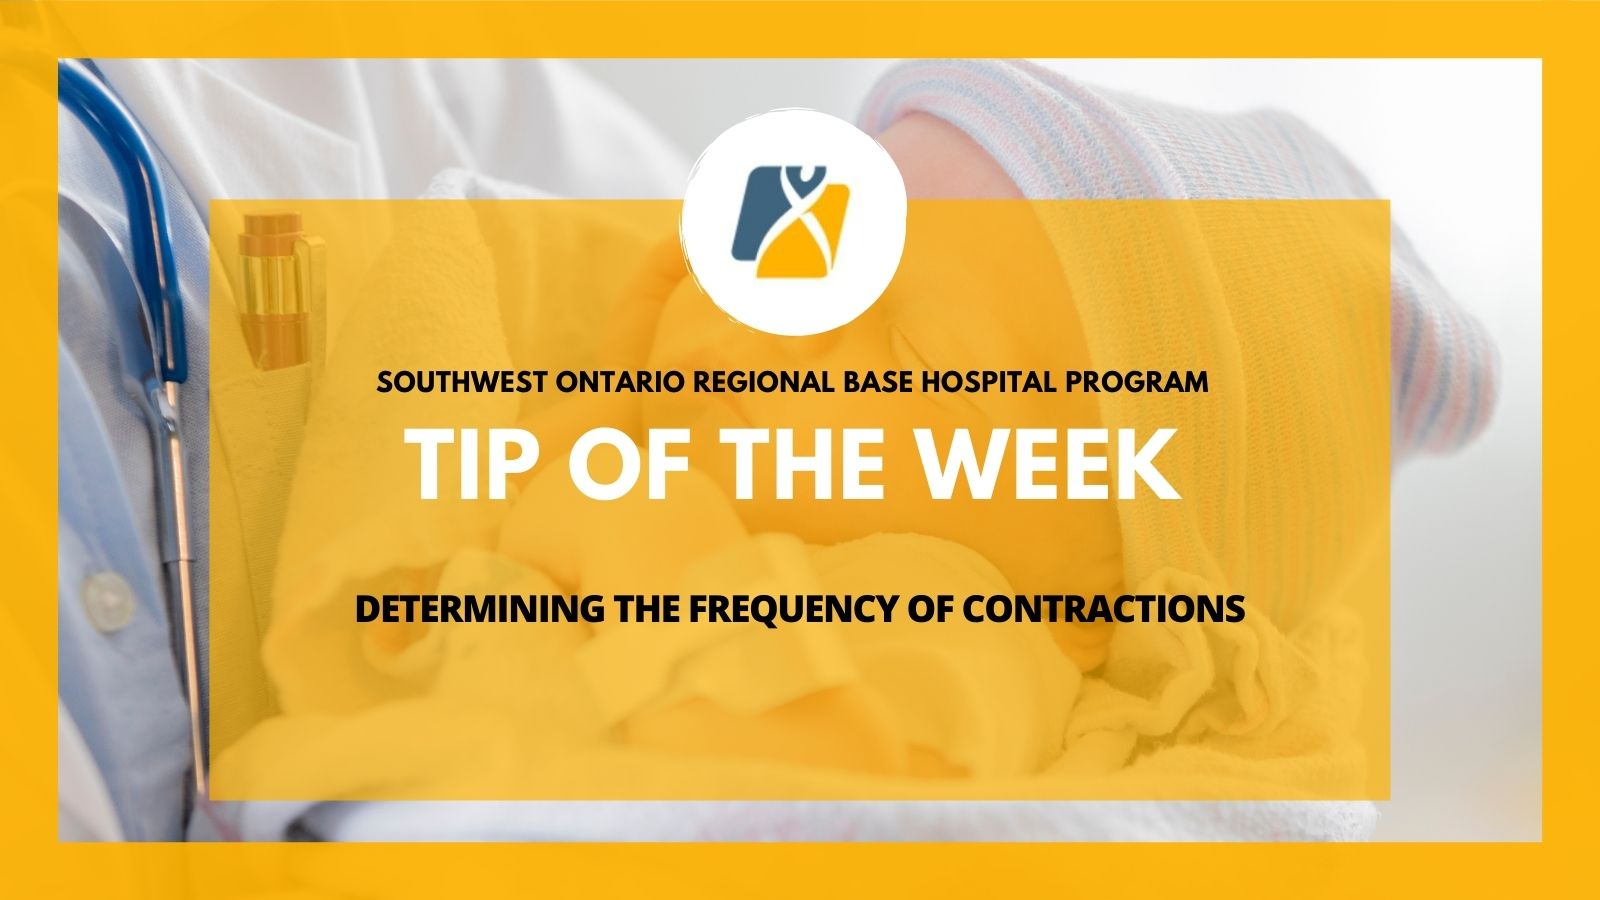 TOTW: Determining the Frequency of Contractions